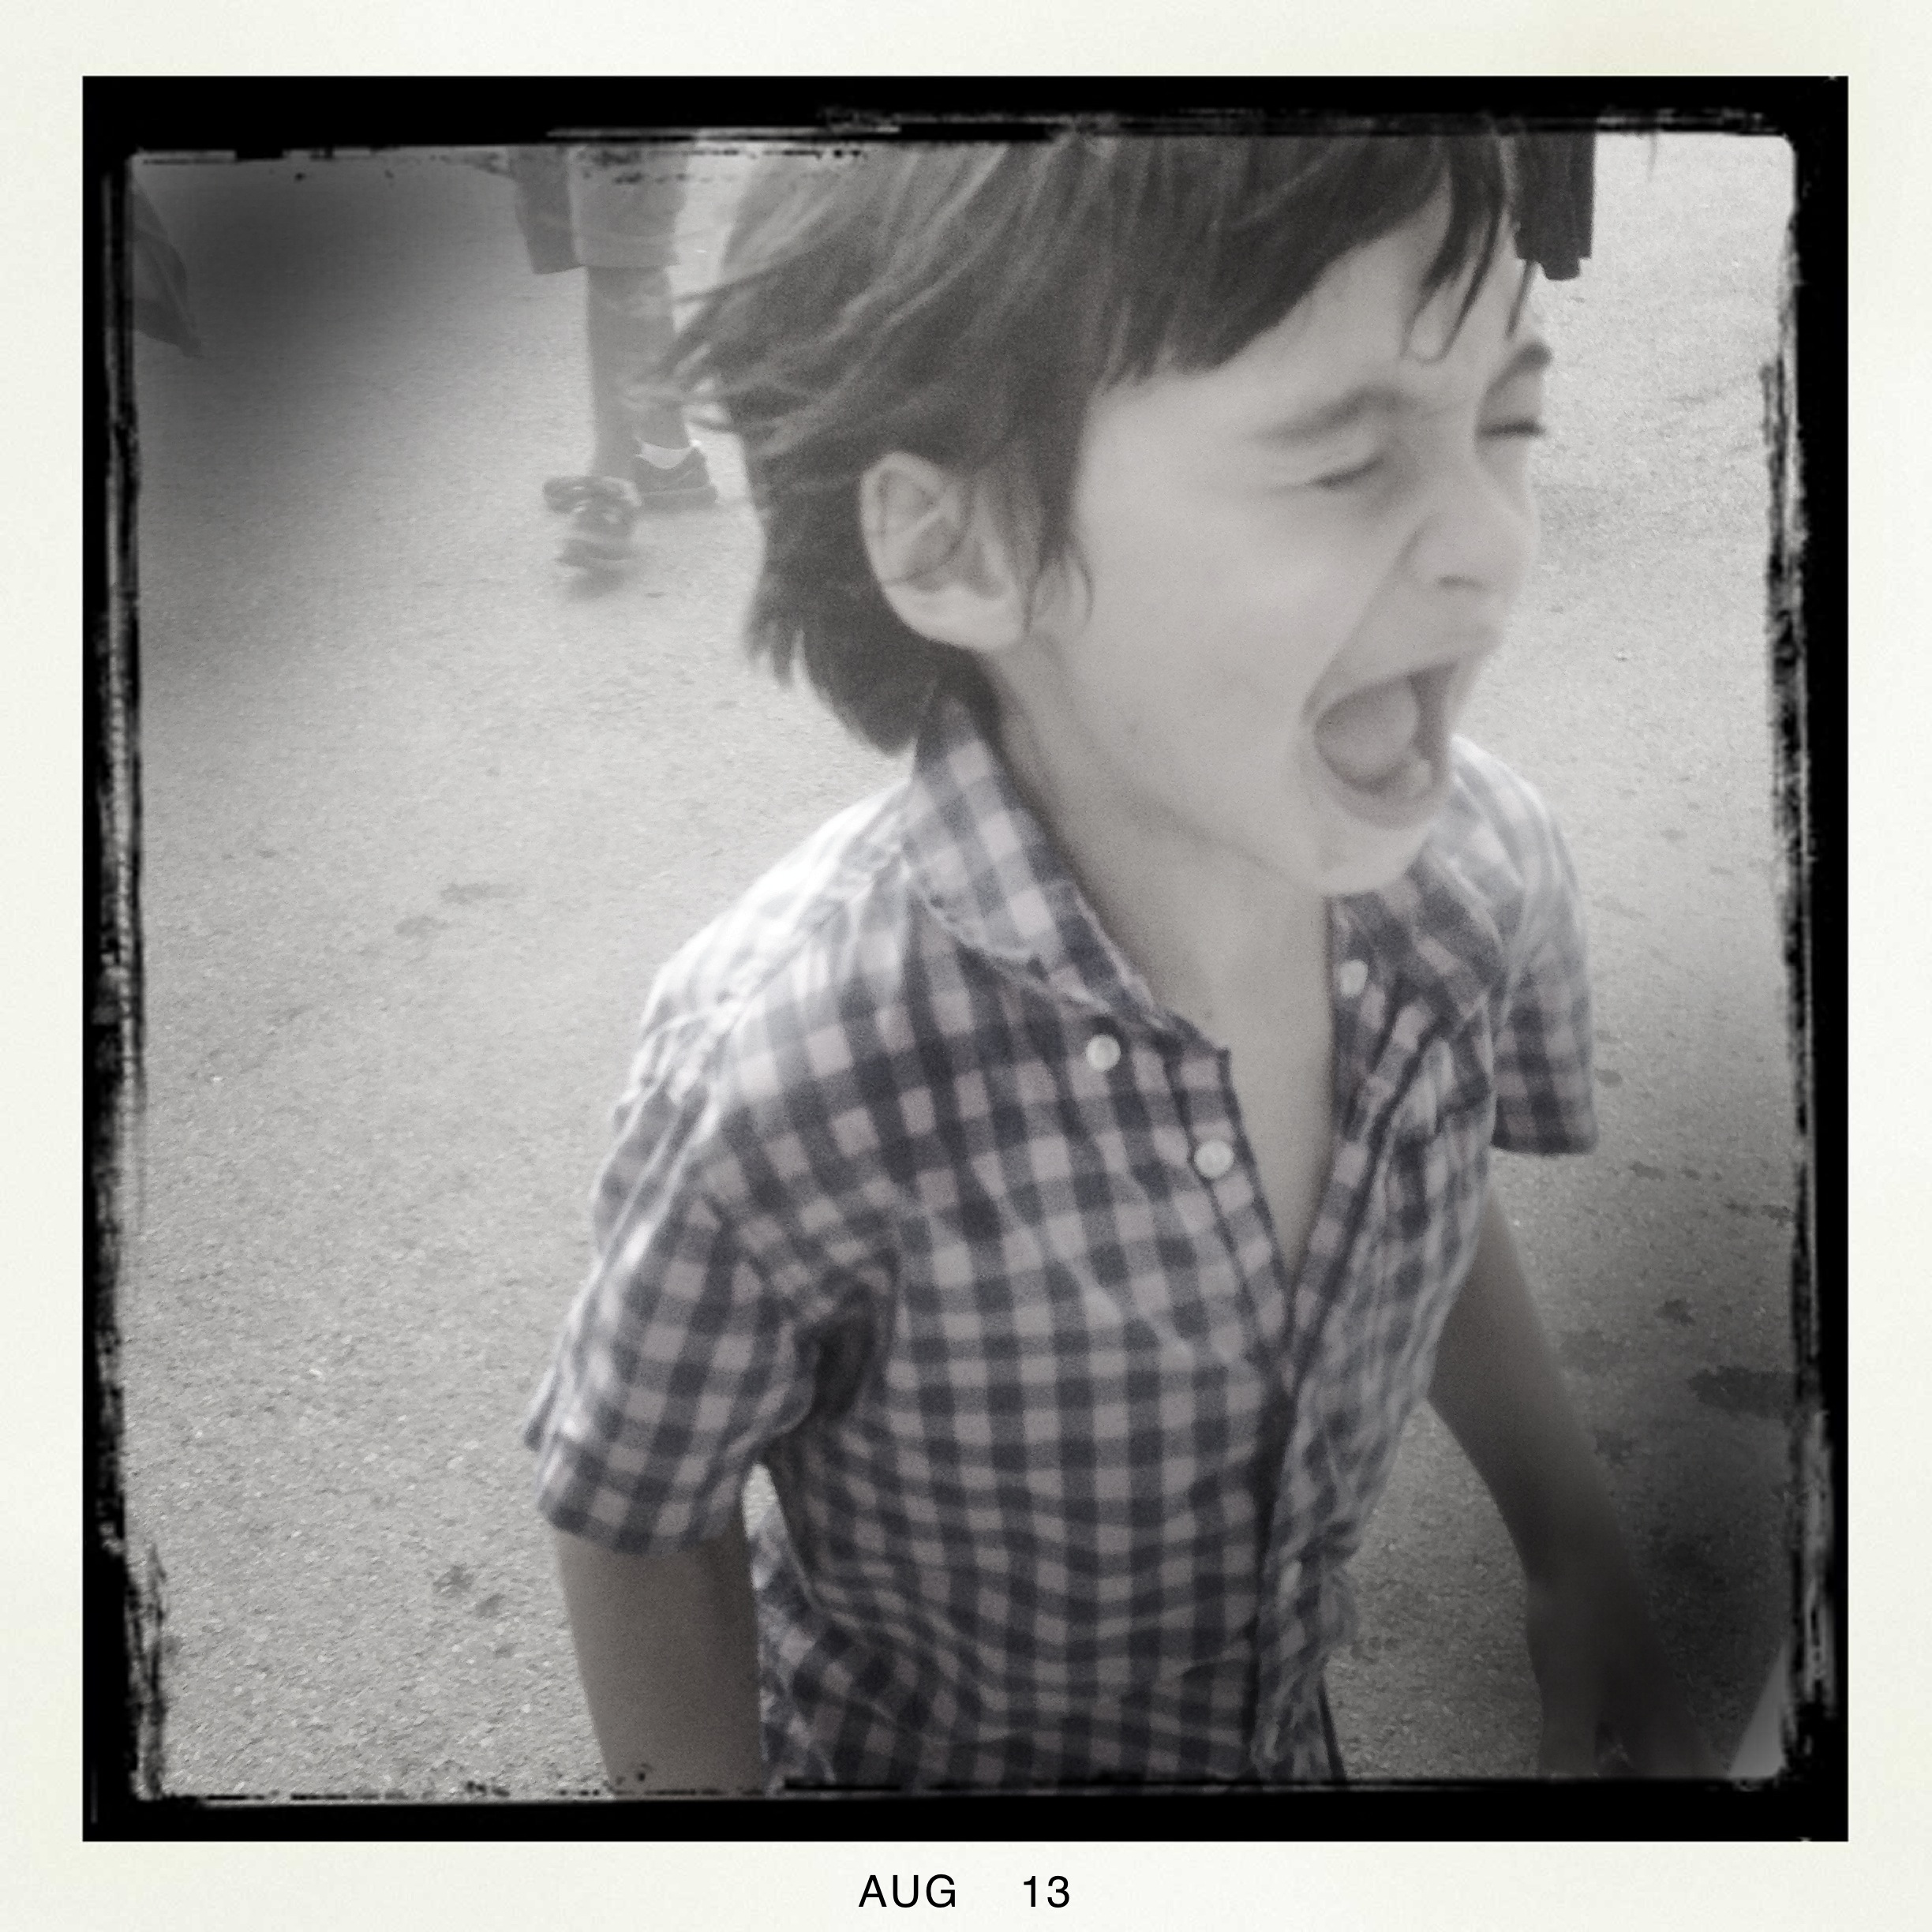 Boy Laughing at Summer Fair